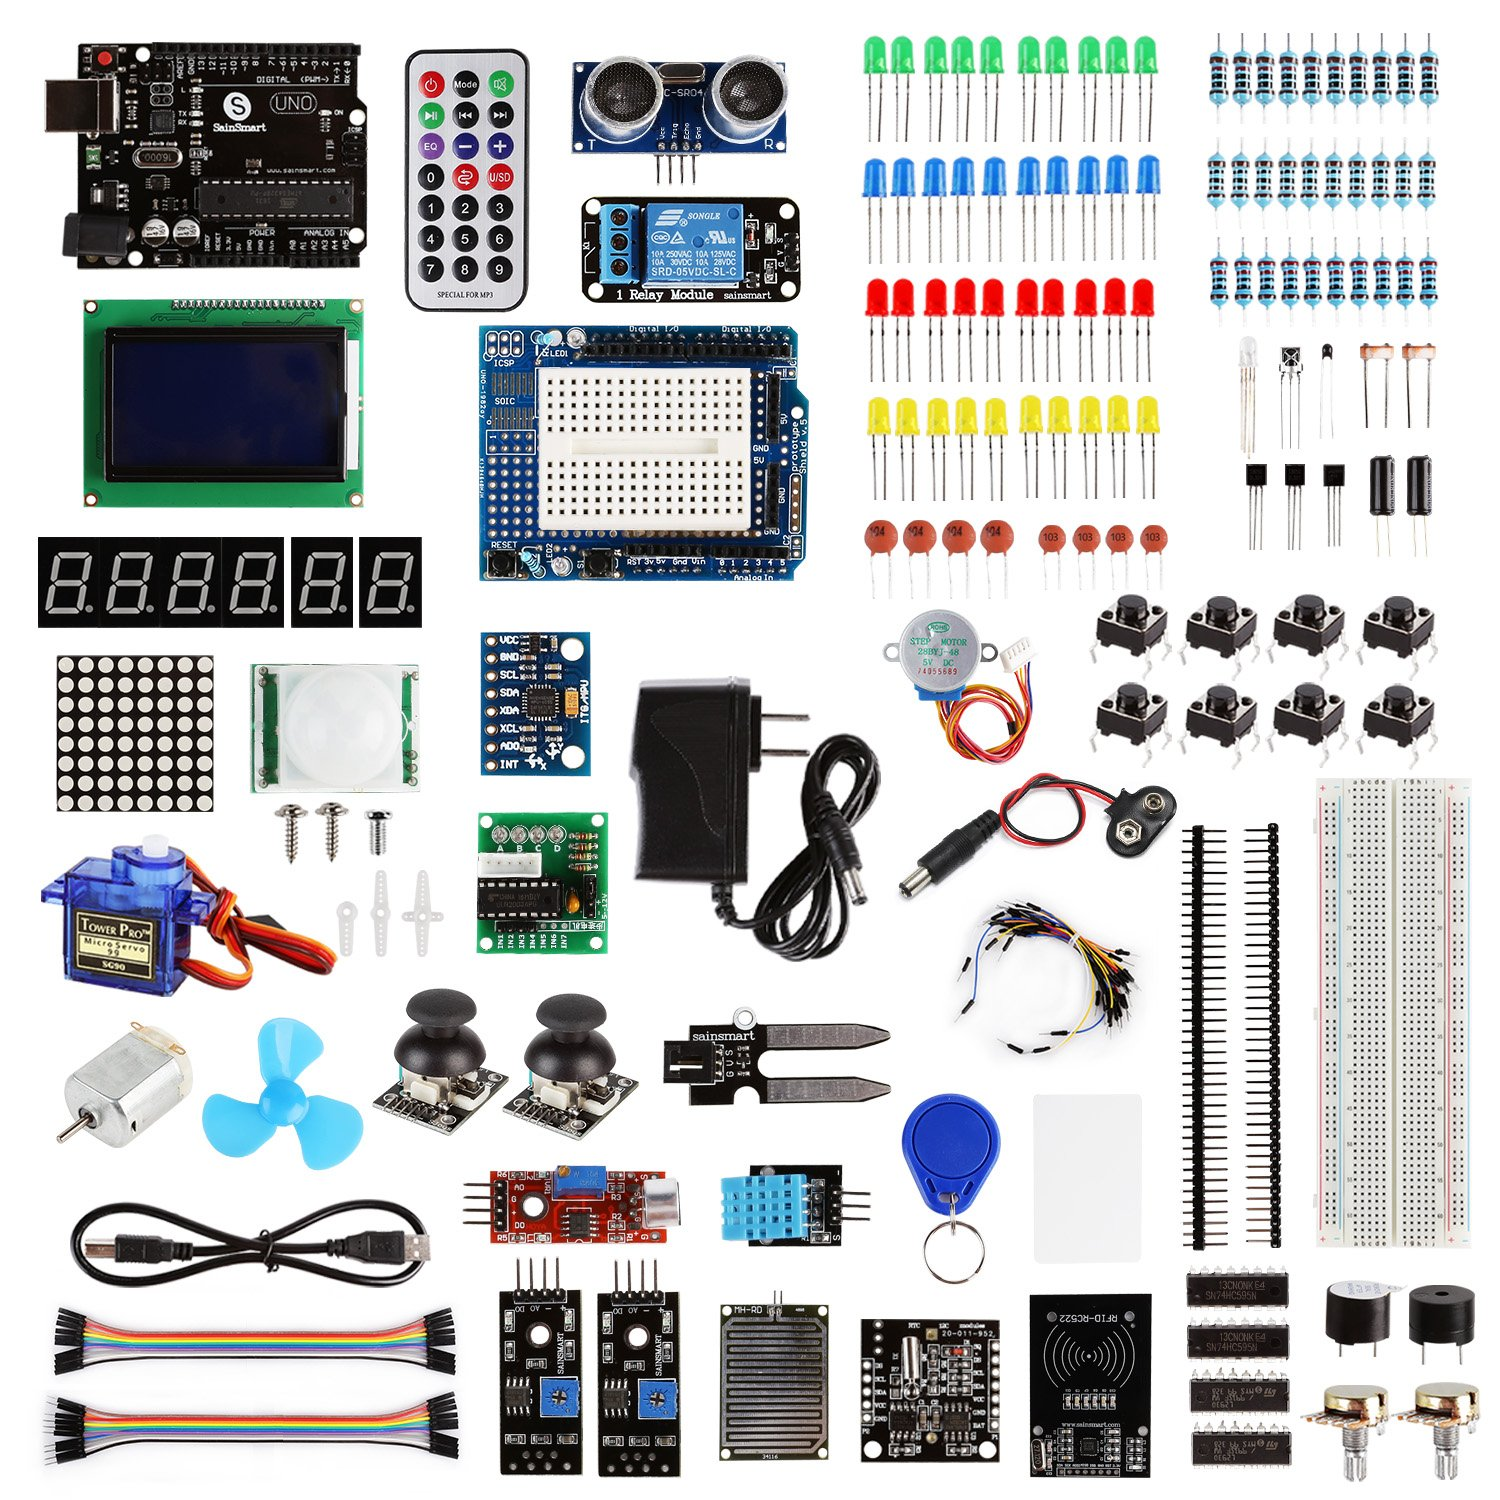 【SainSmart BAI】Arduino UNO Ultimate Starter Kit, w/ UNO R3, LCD, 7 Sensors, 3 Motors, 100+ Components by SainSmart